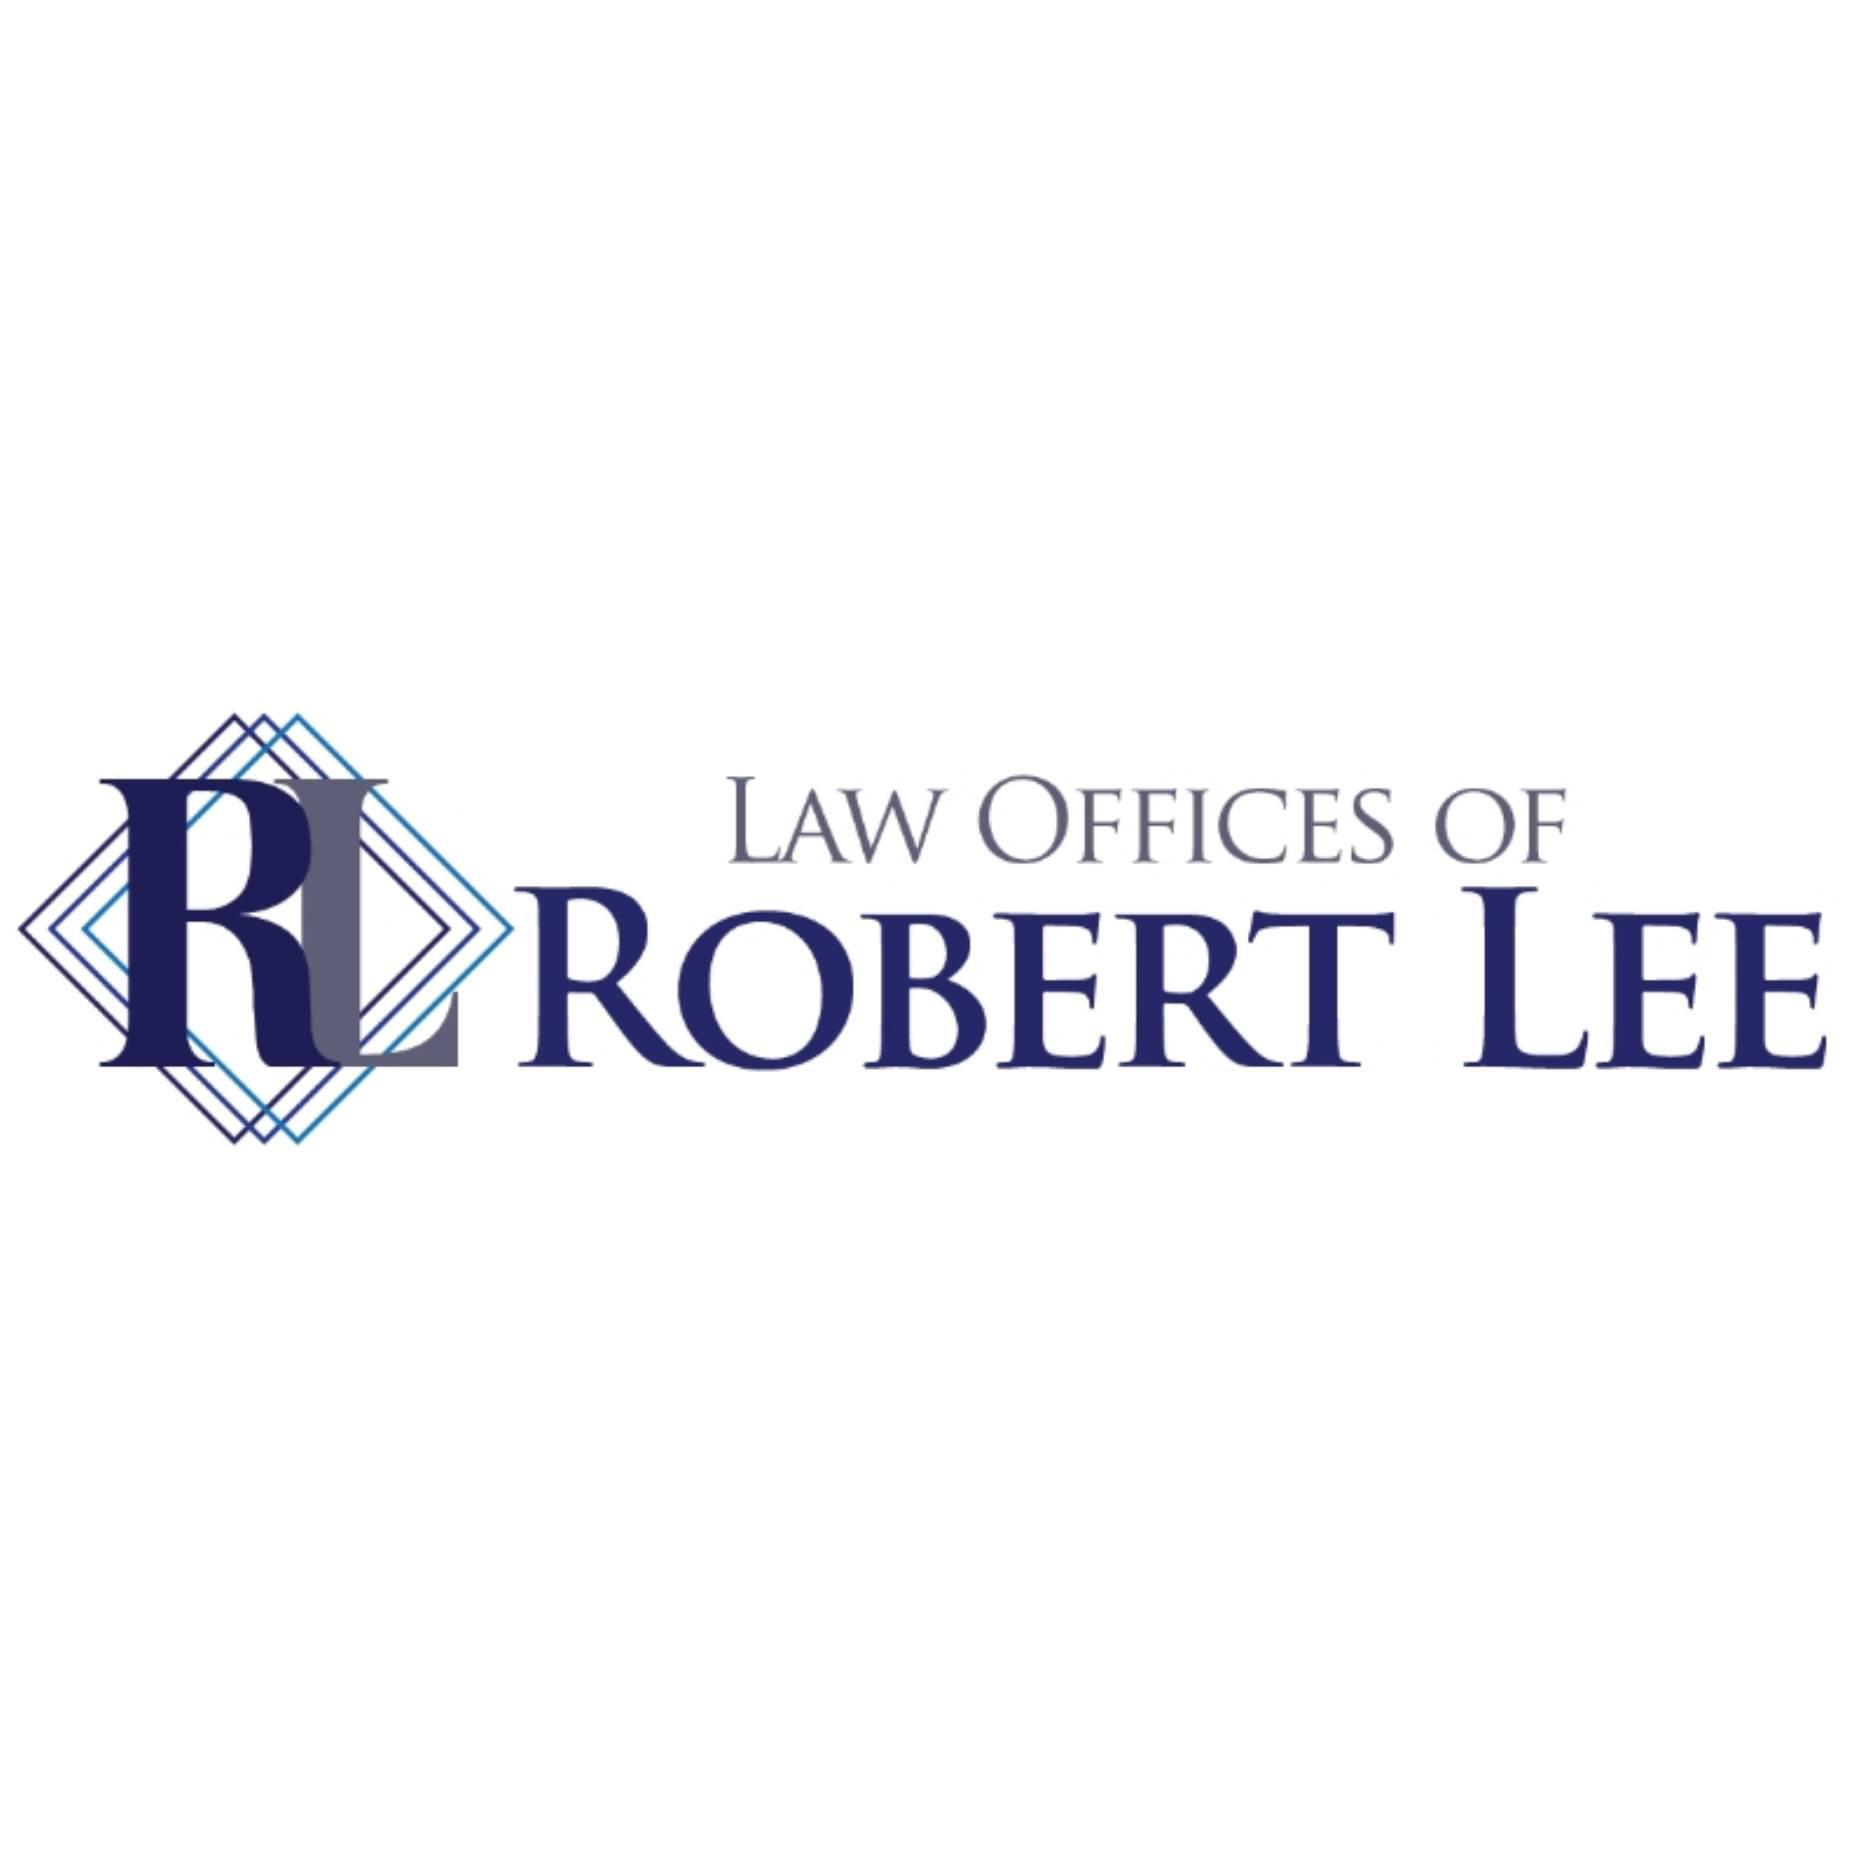 Robert Lee Law